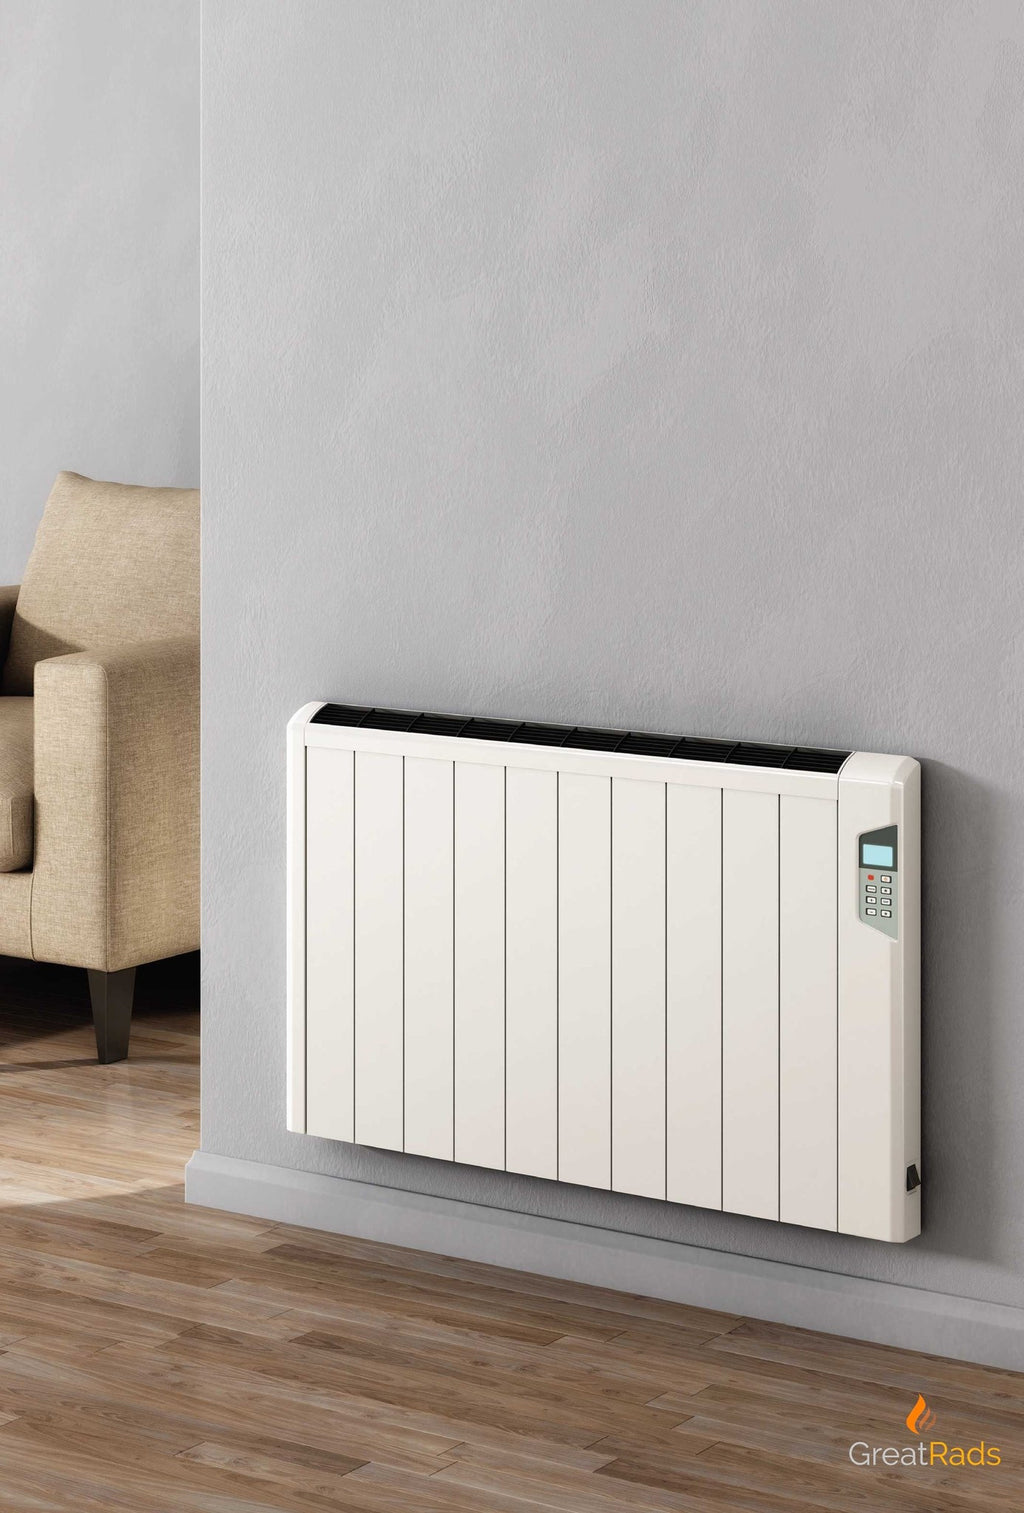 Electric Radiator - Reina Arlec Aluminium Electric Radiator